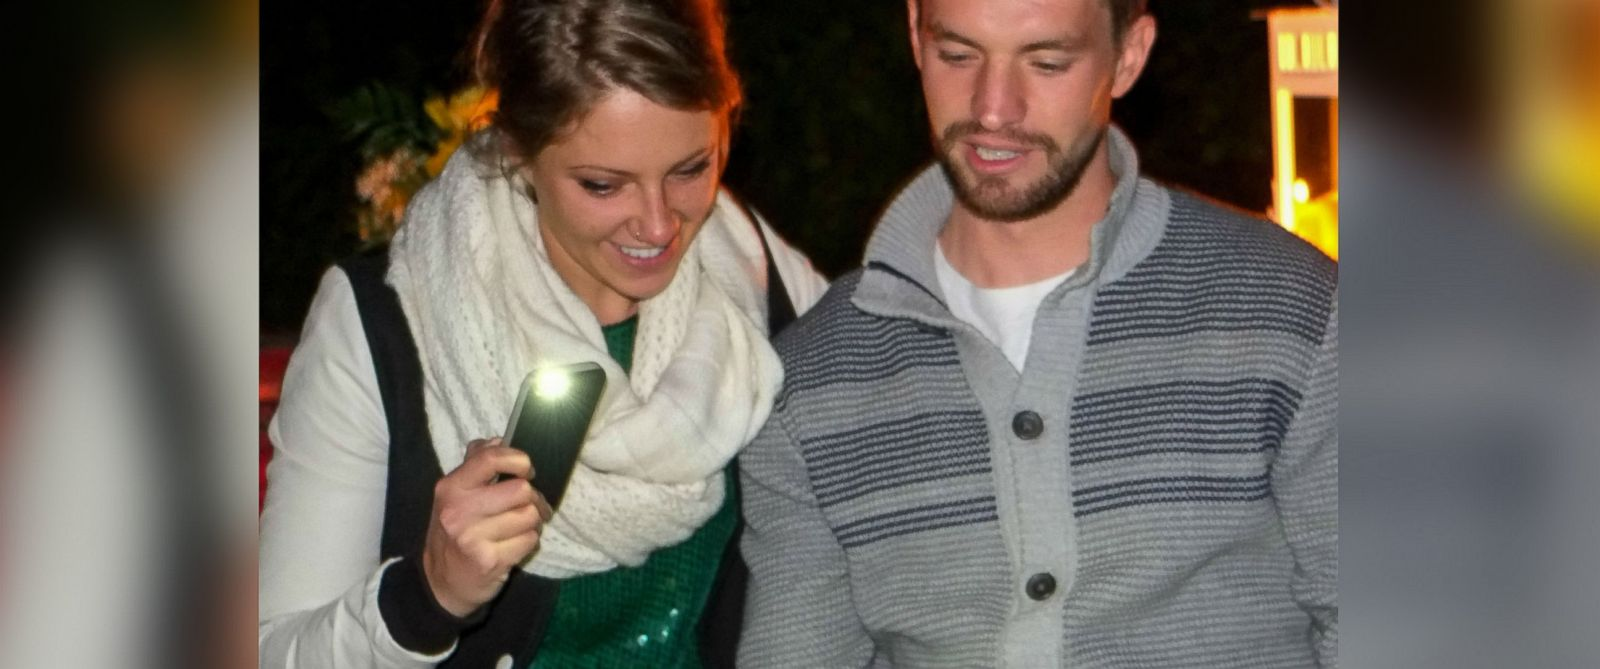 PHOTO: Chad Akins proposed to his girlfriend Kaitlin with a custom illustrated book.